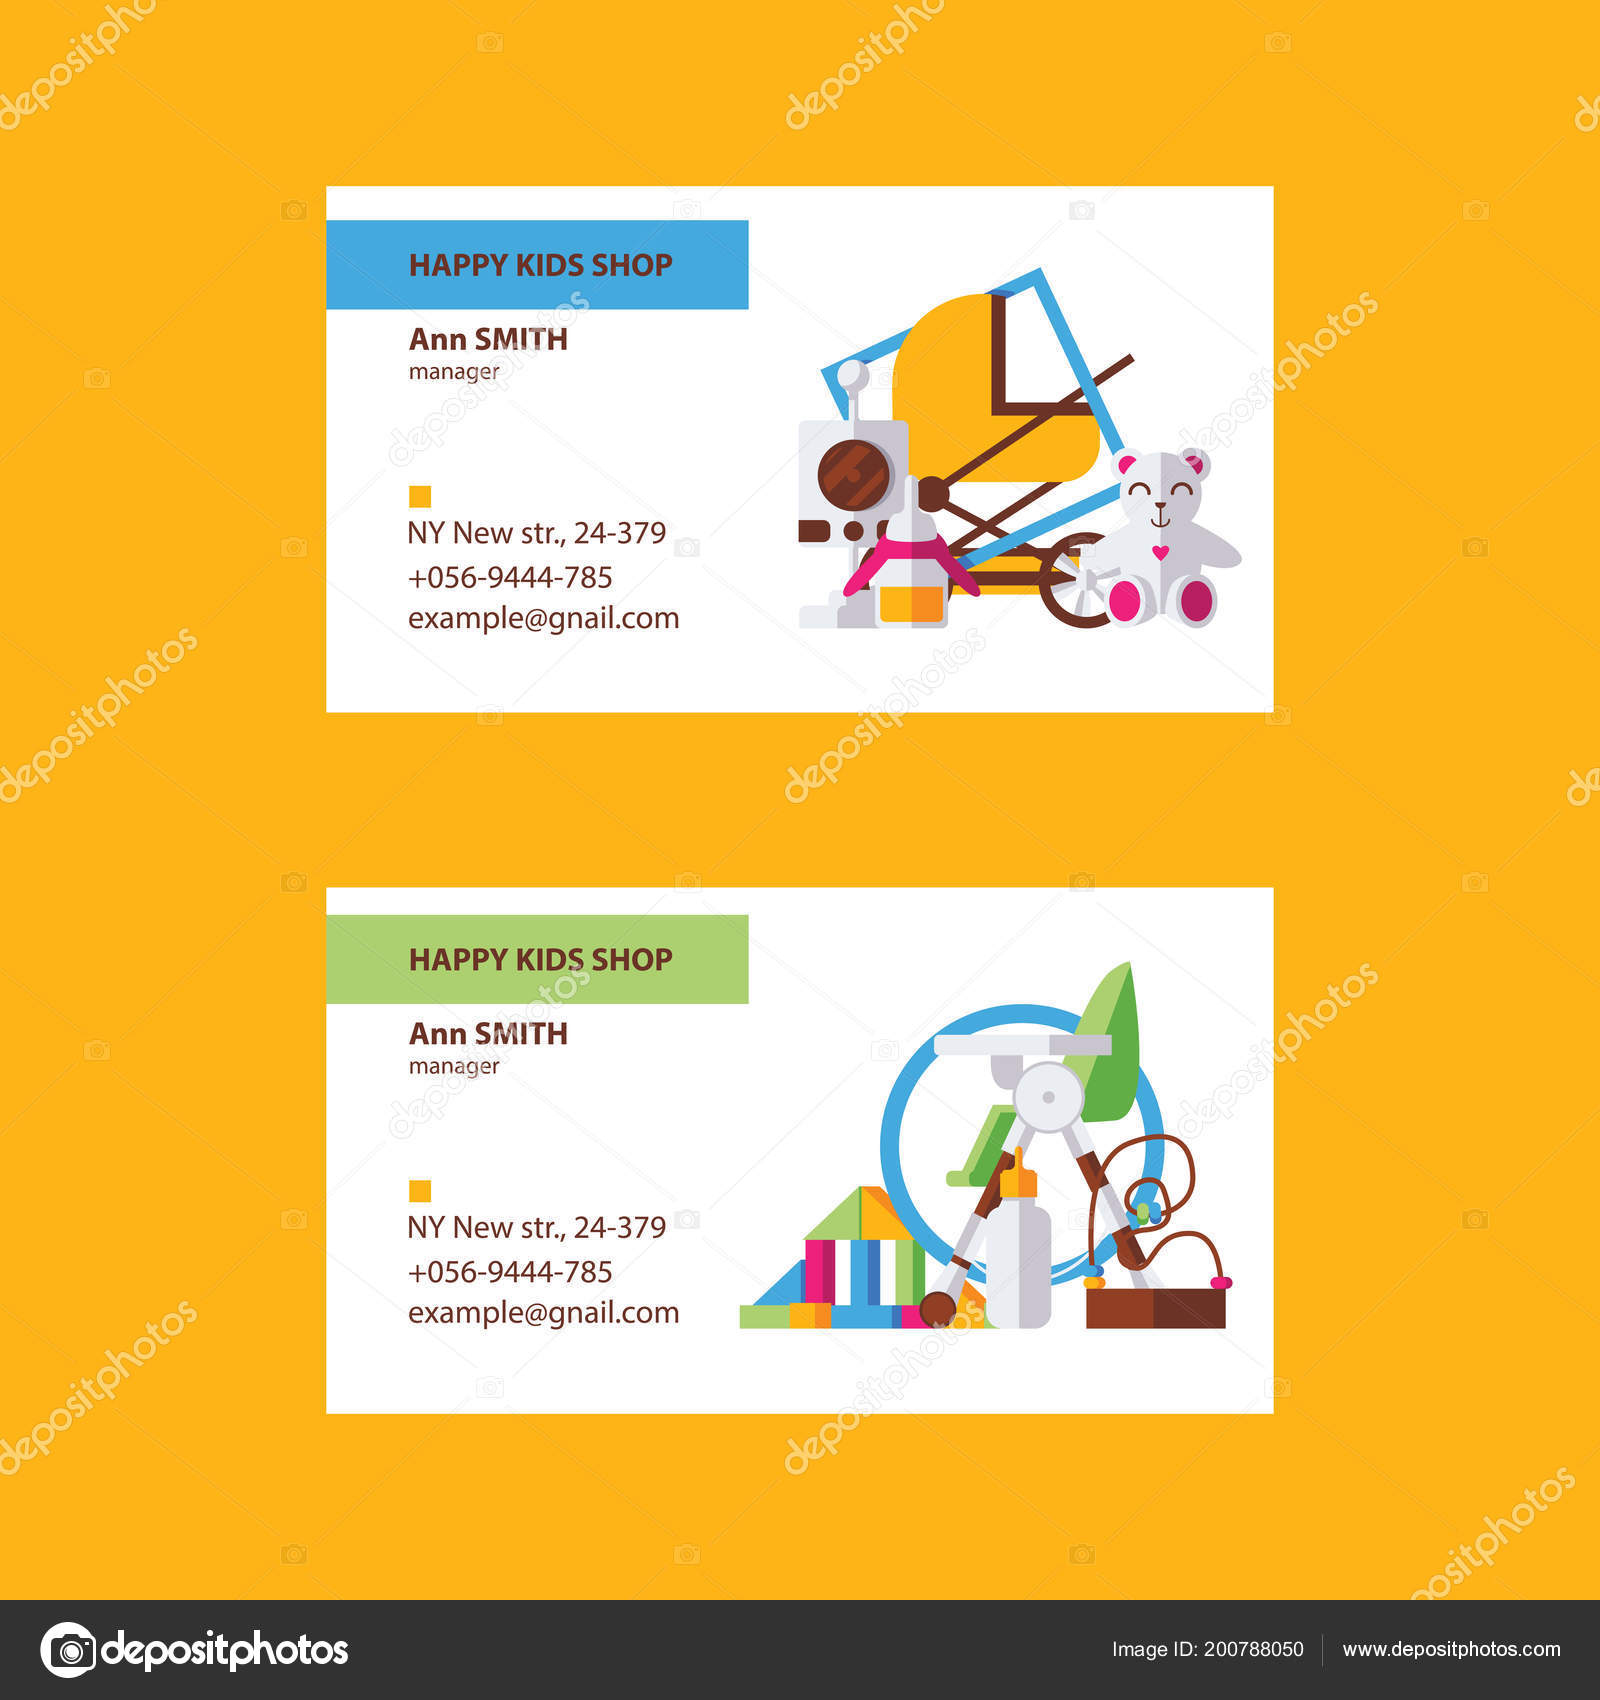 Business cards good kids shop children goods store bright colors business cards good for kids shop or children goods store in bright colors on white background vector collection for newborn baby store colourmoves